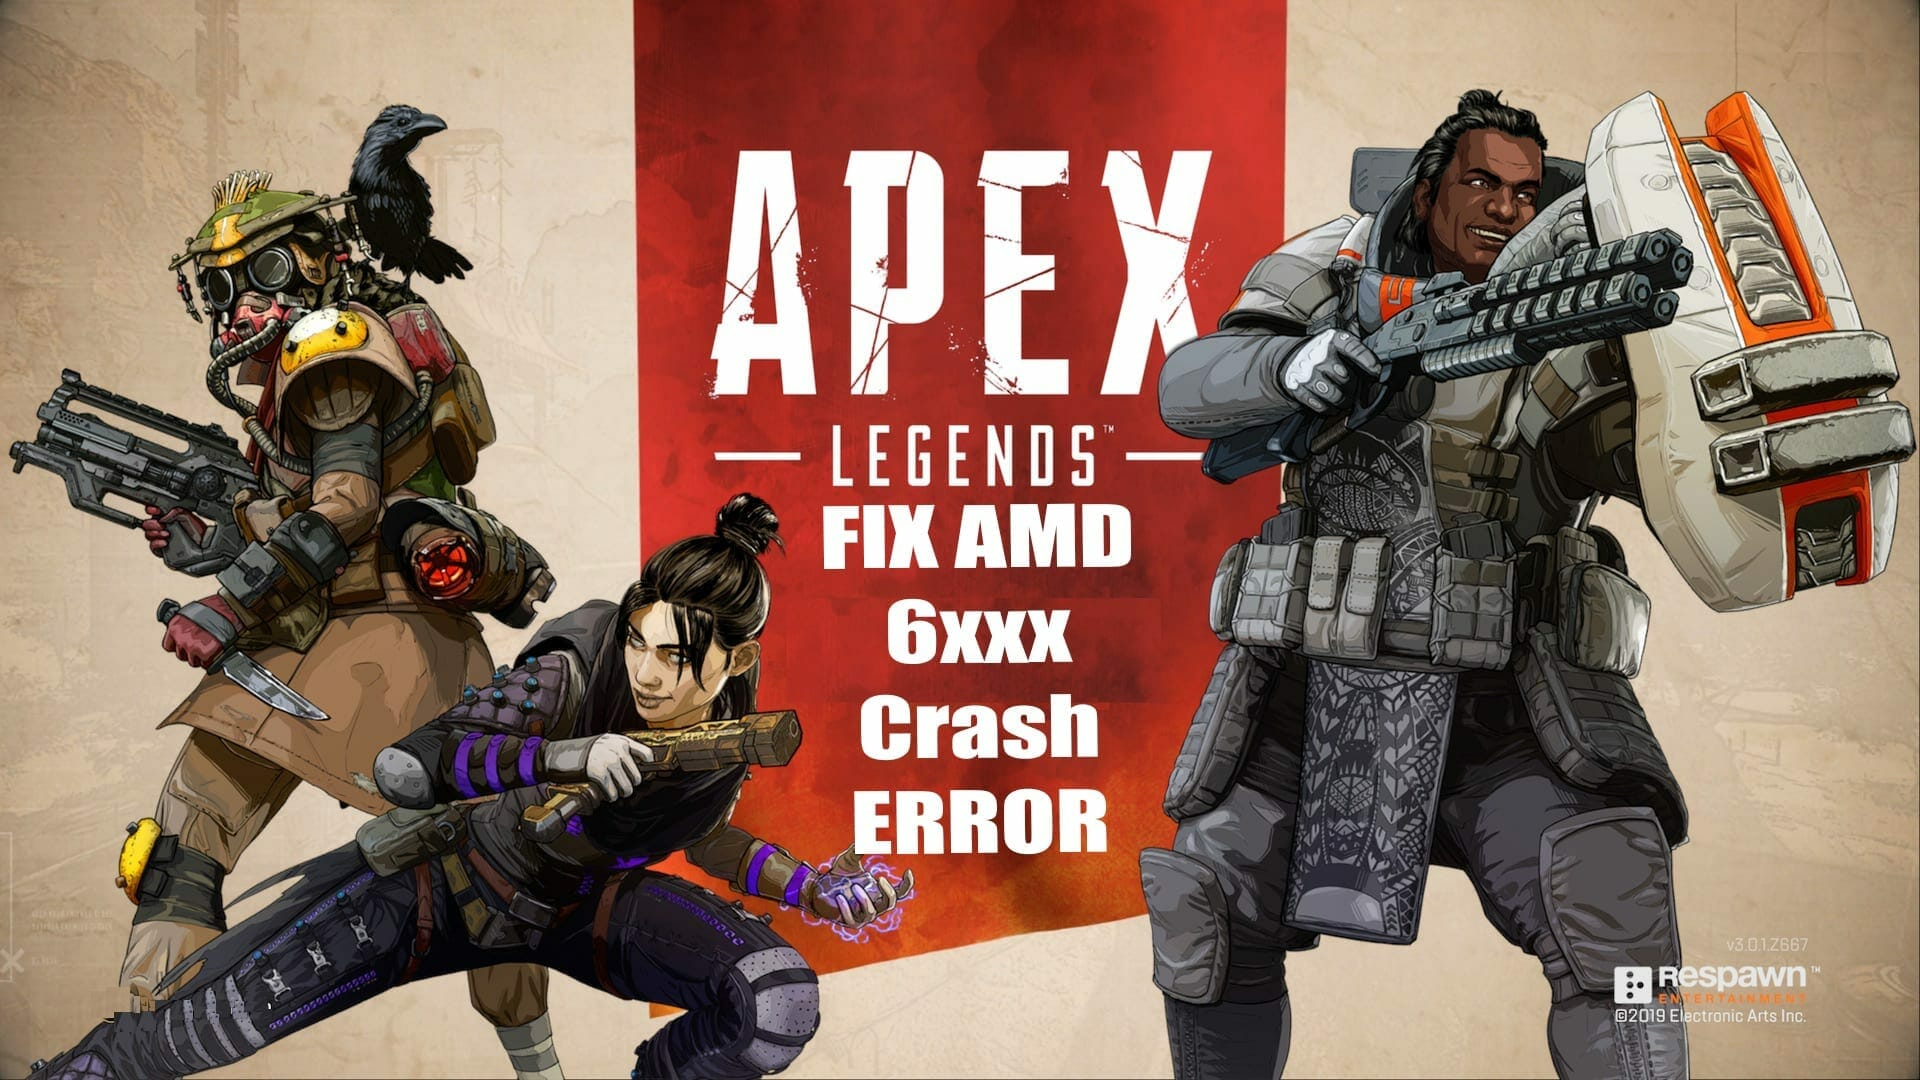 Solo and Duo modes might be coming to Apex Legends